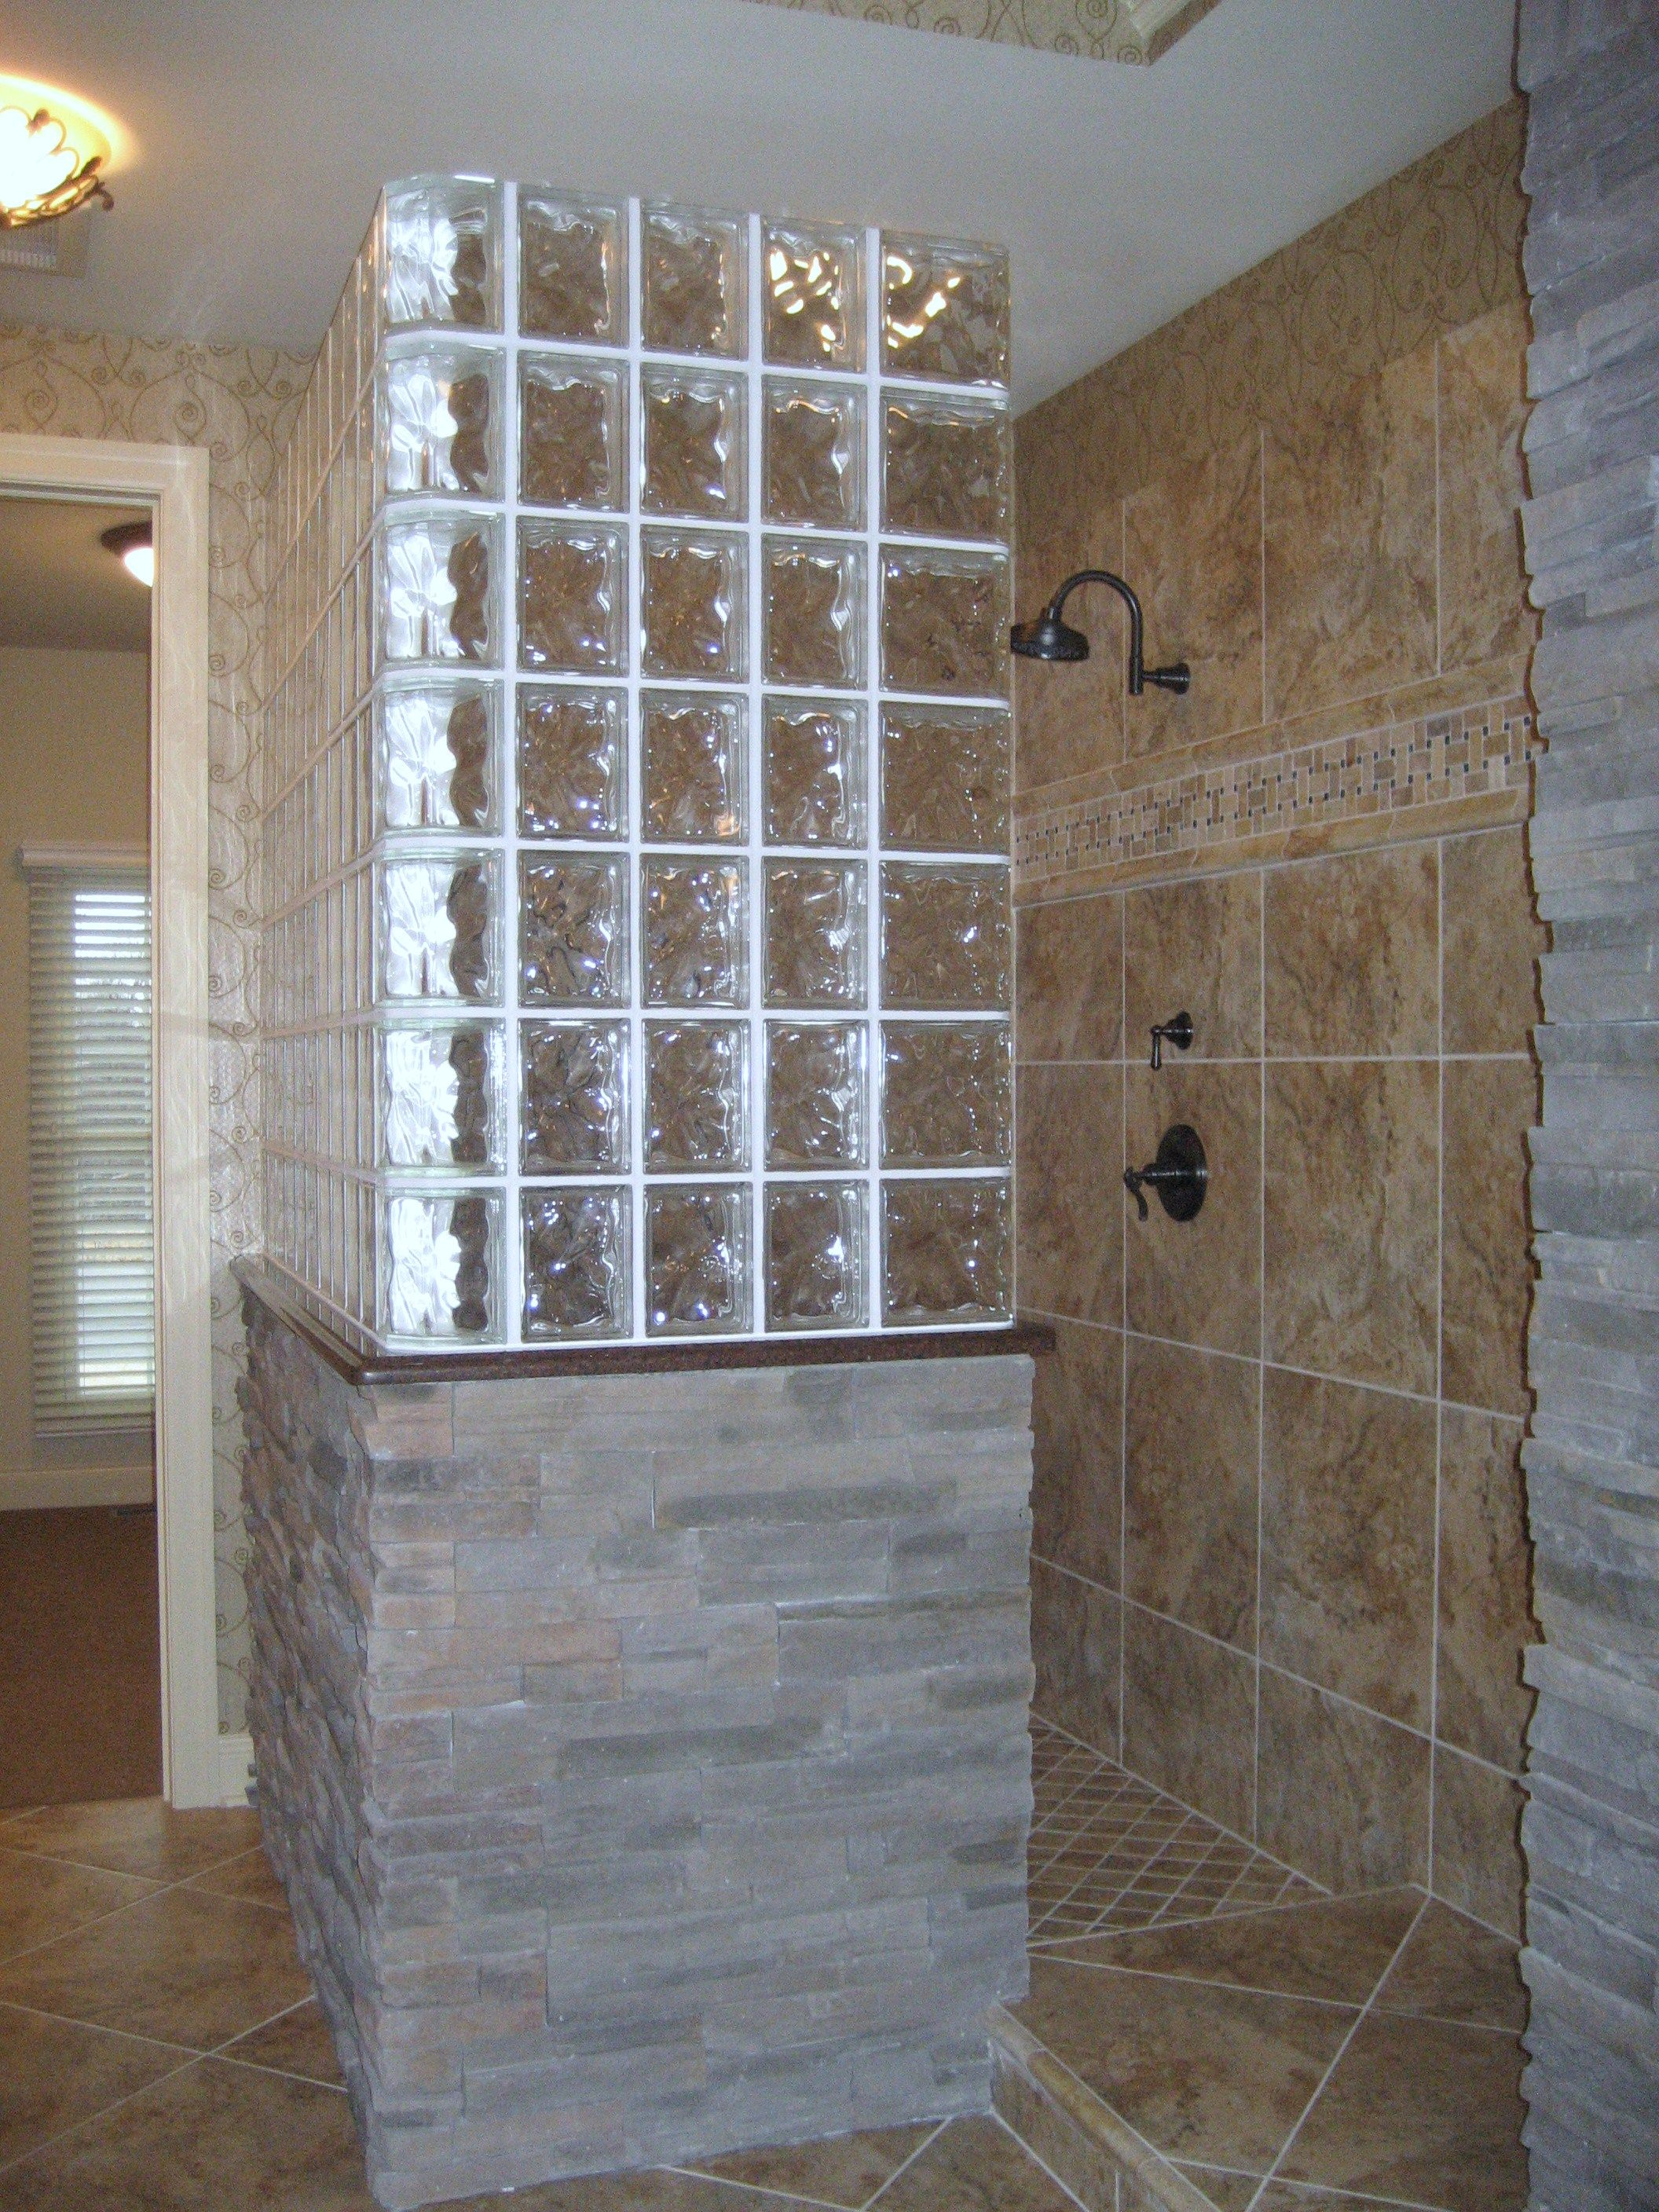 A very different look blending glass block, tile and stone ...